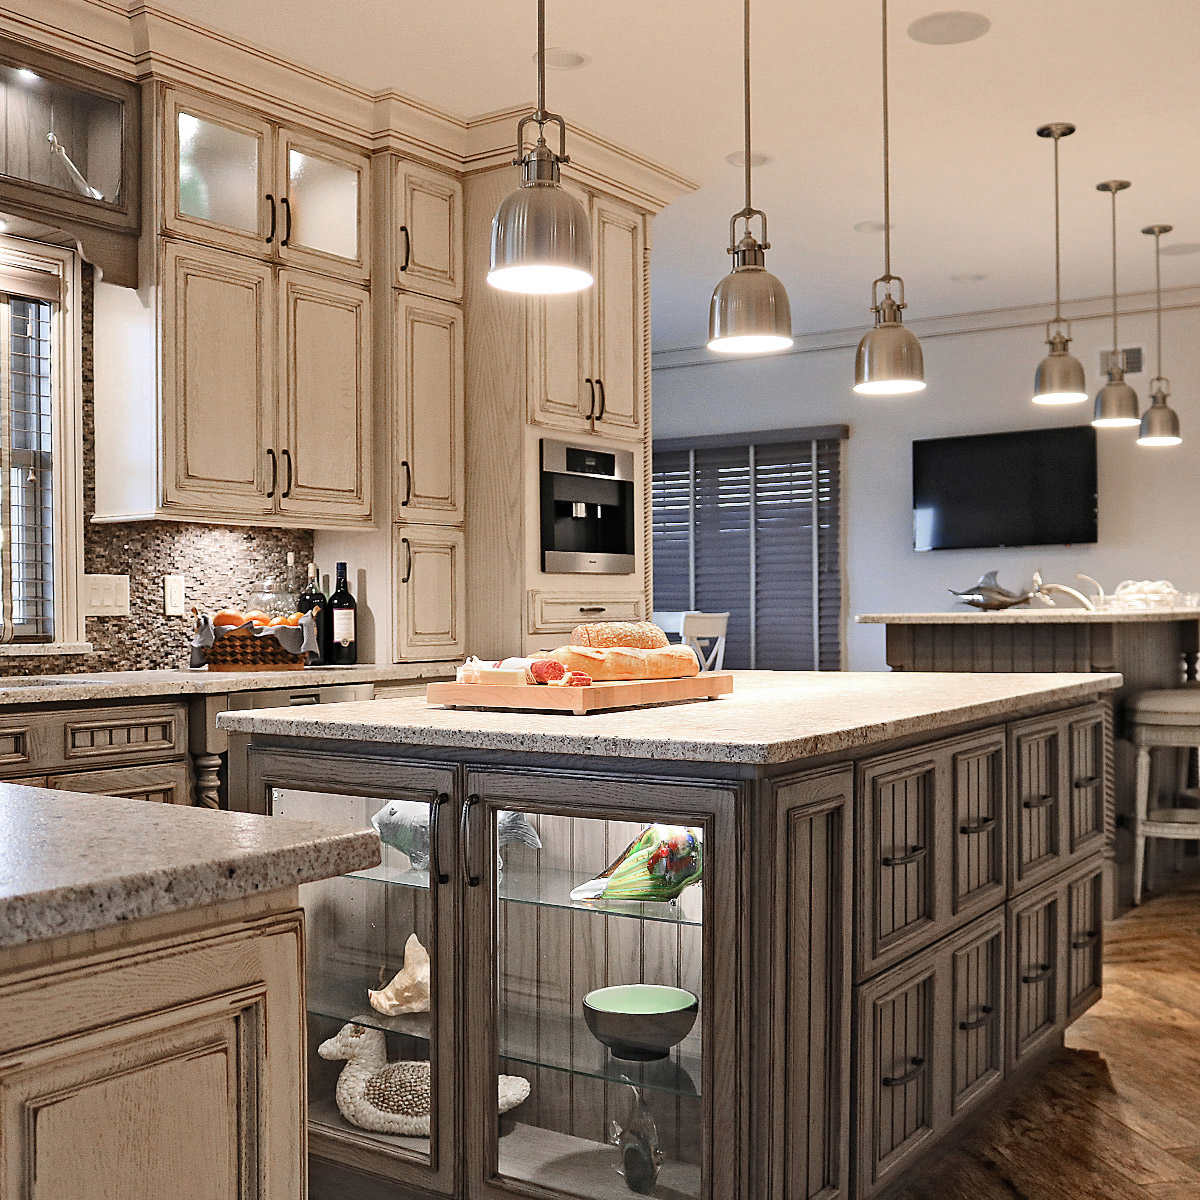 Full-Custom Cabinets by Tuscan Hills Kitchens & Baths Ships in 5-5 weeks